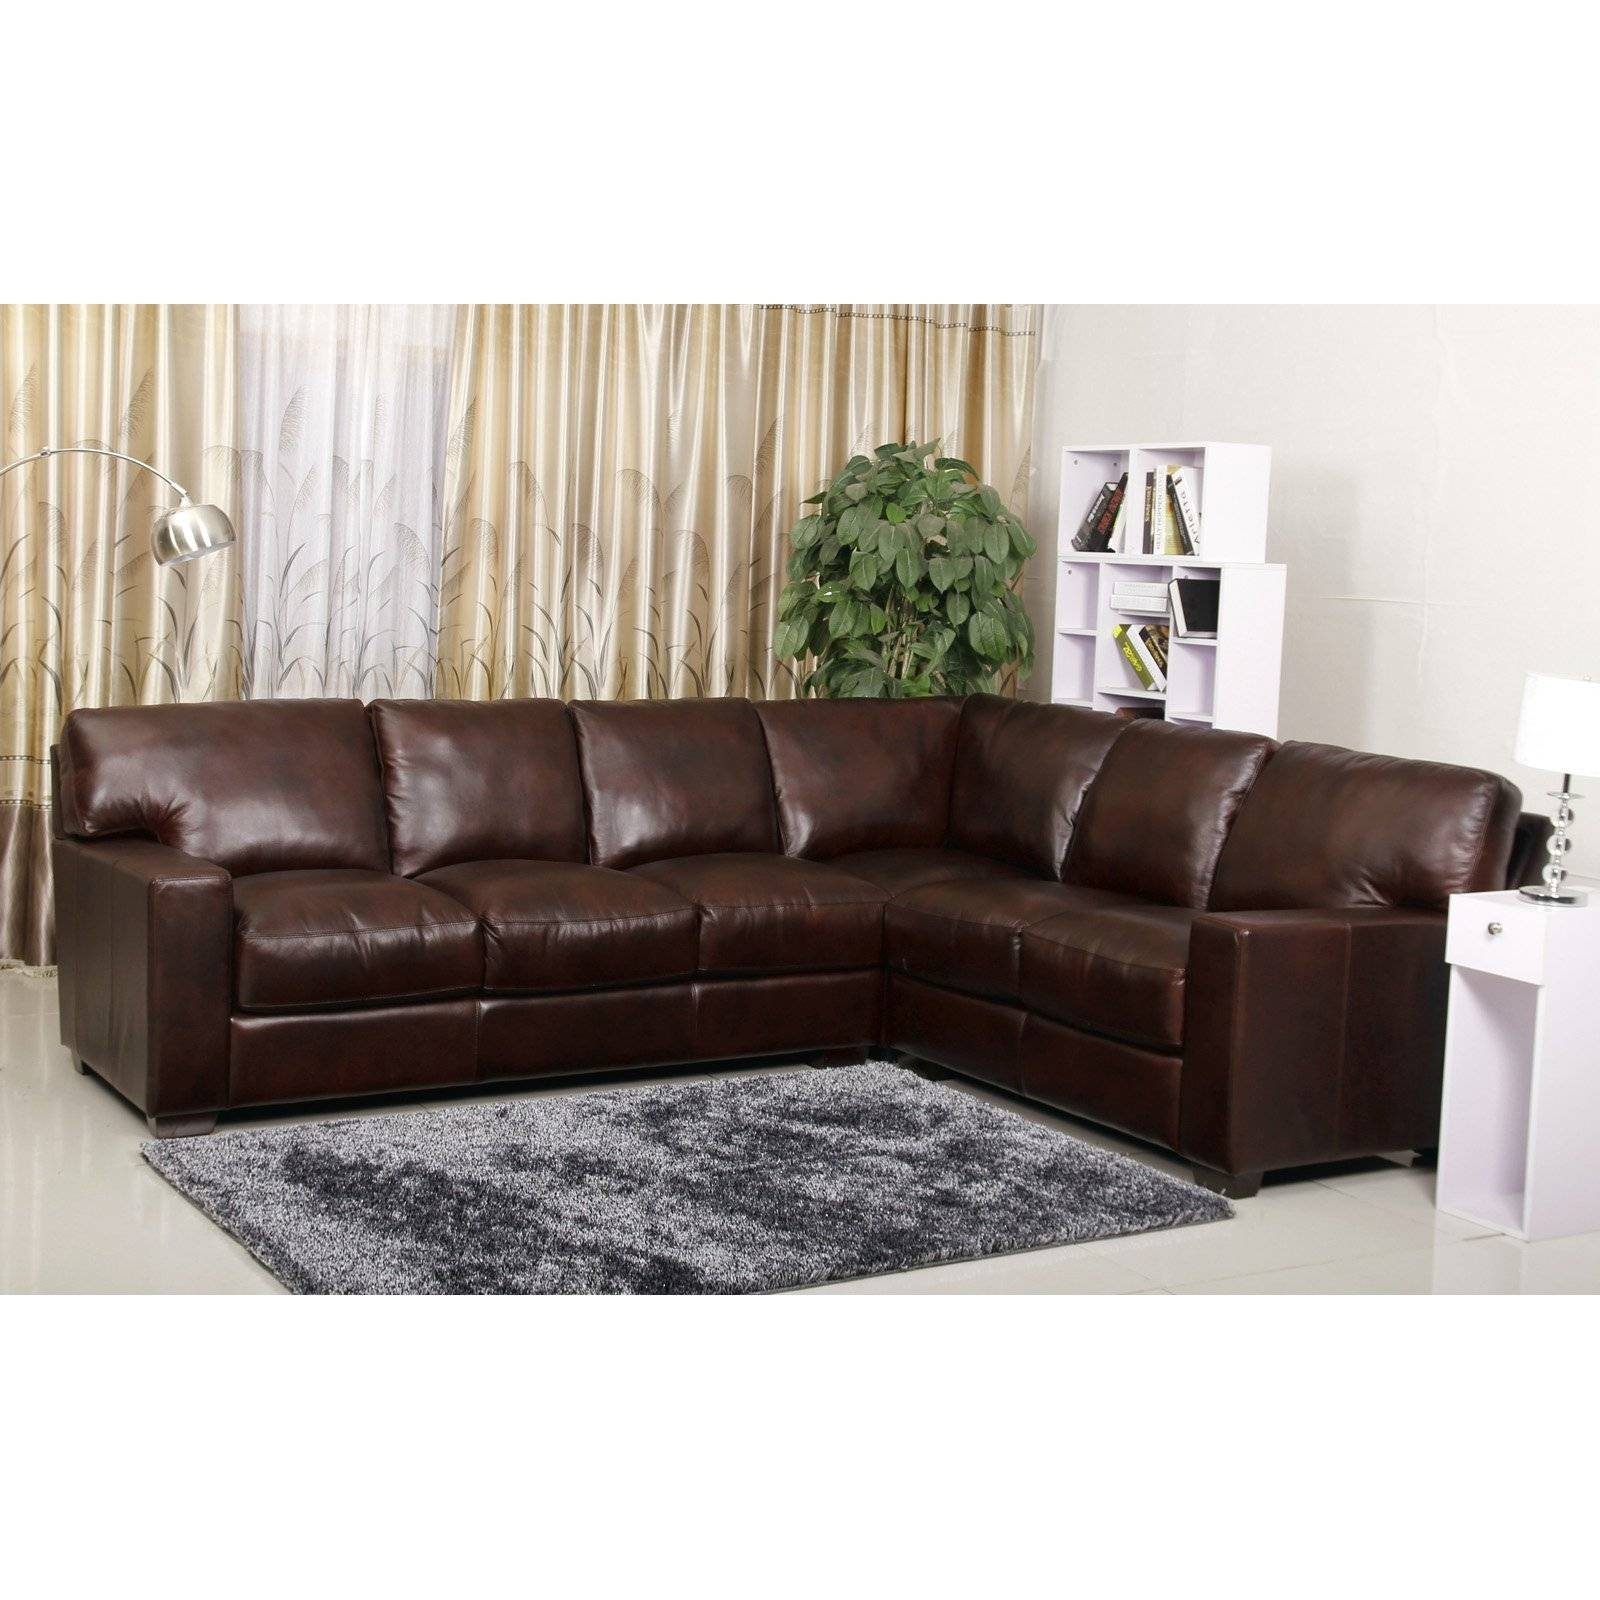 Abbyson Sectional Sofa 67 With Abbyson Sectional Sofa pertaining to Abbyson Sectional Sofa (Image 14 of 30)